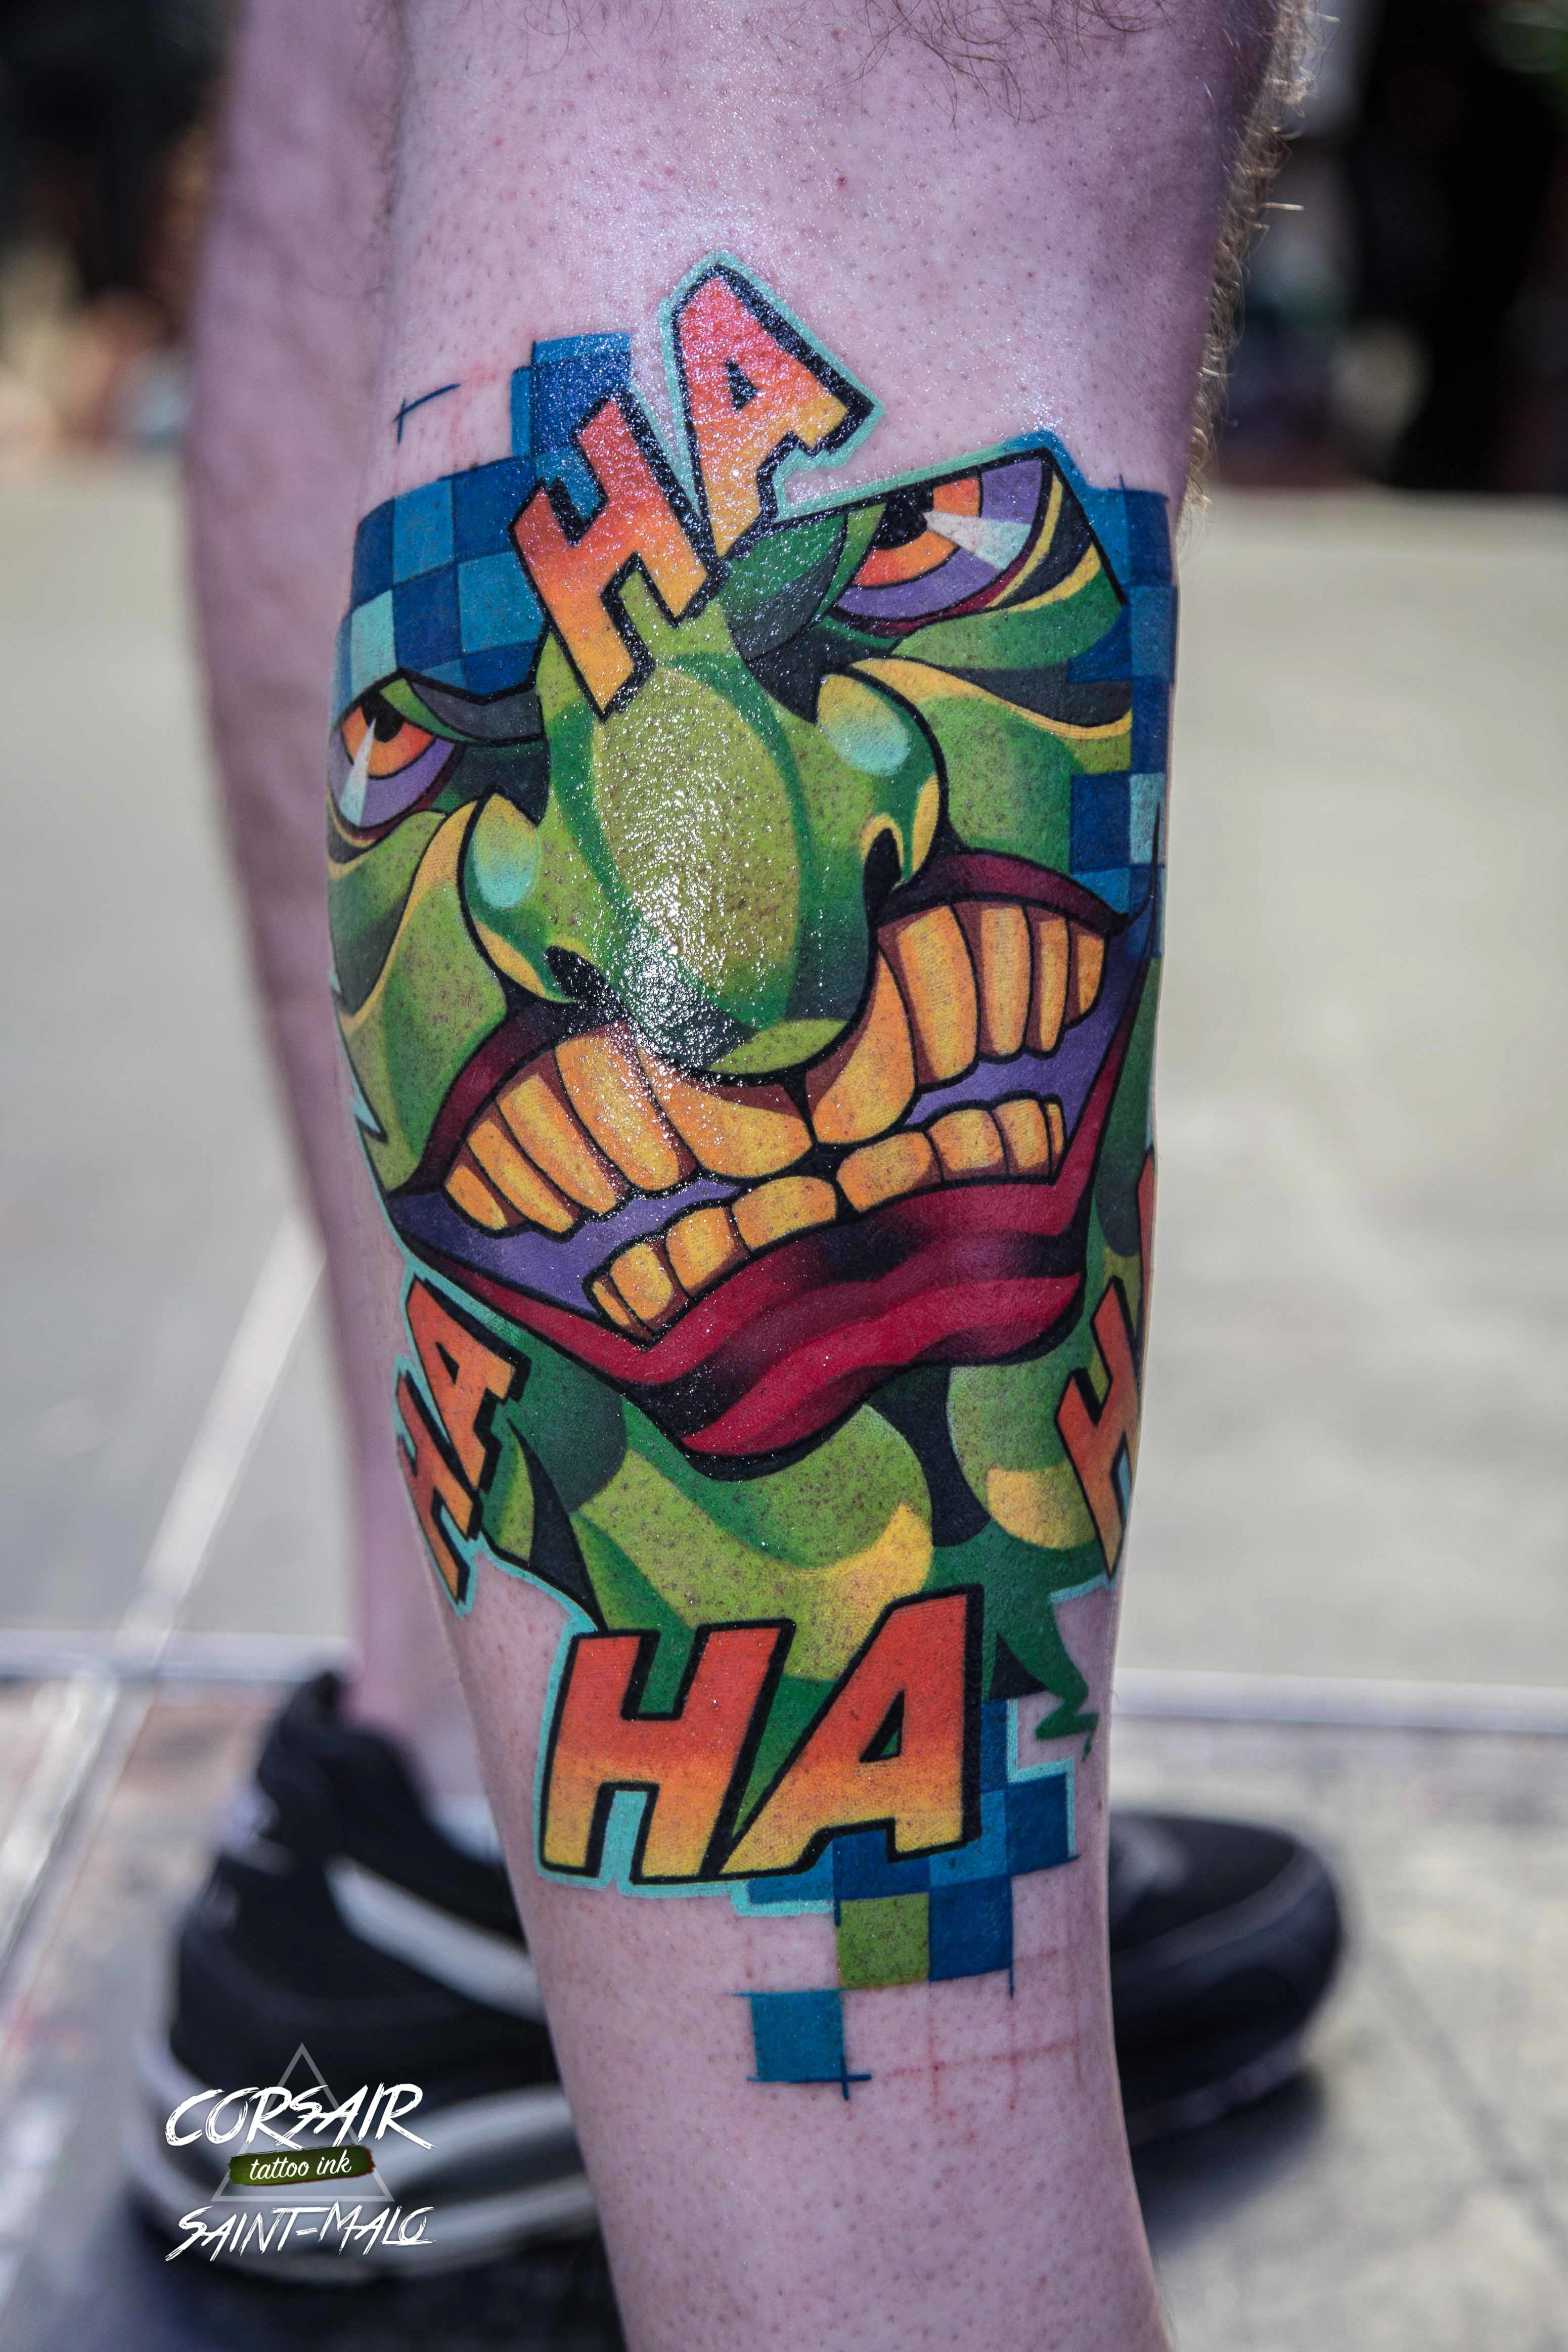 convention-tatouage-saint-malo-bretagne-corsair-tattoo-ink-tattoo-clown-joker